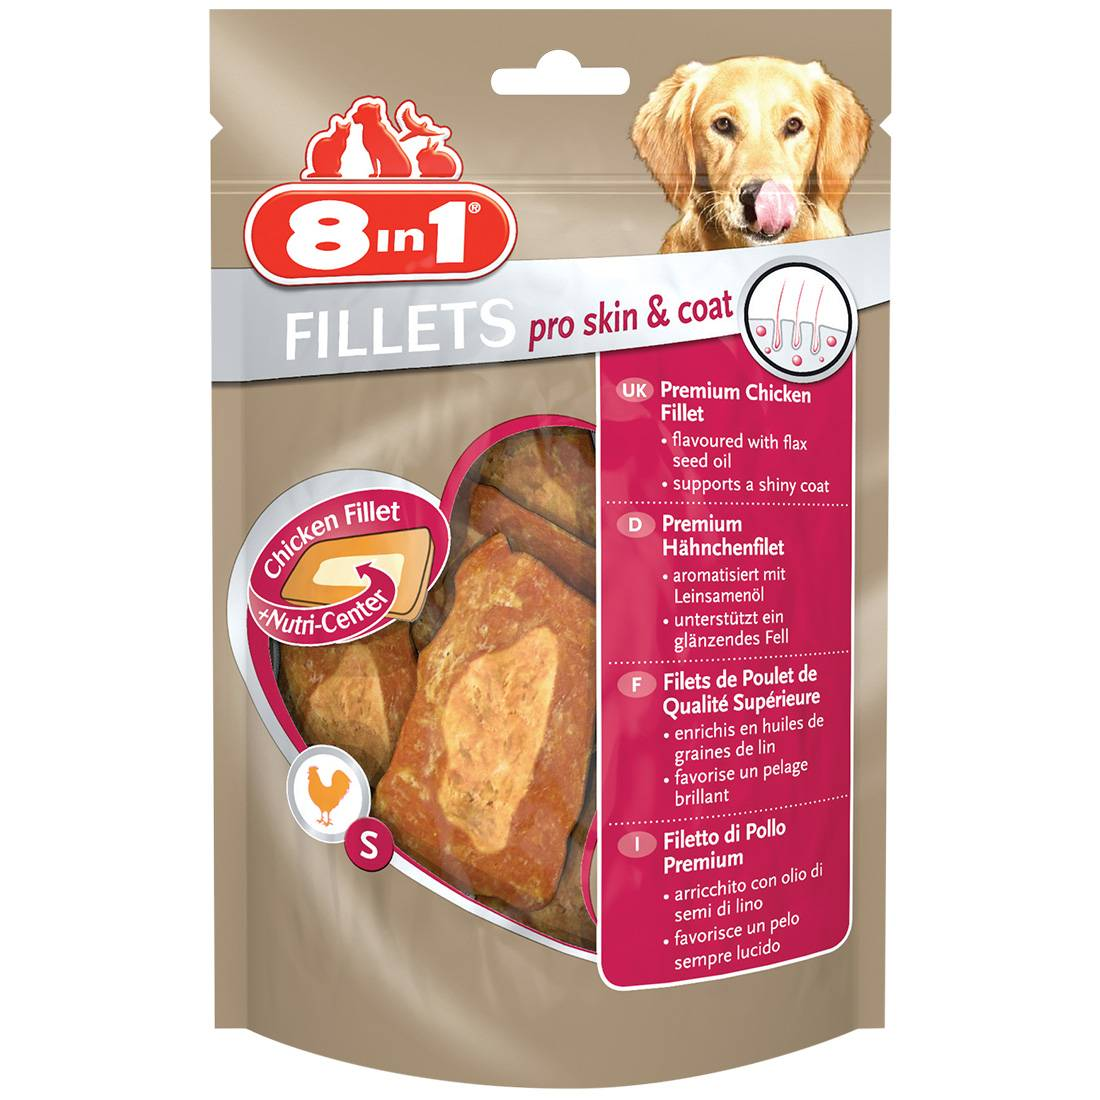 8in1 Fillets Pro Skin&Coat Taille : S